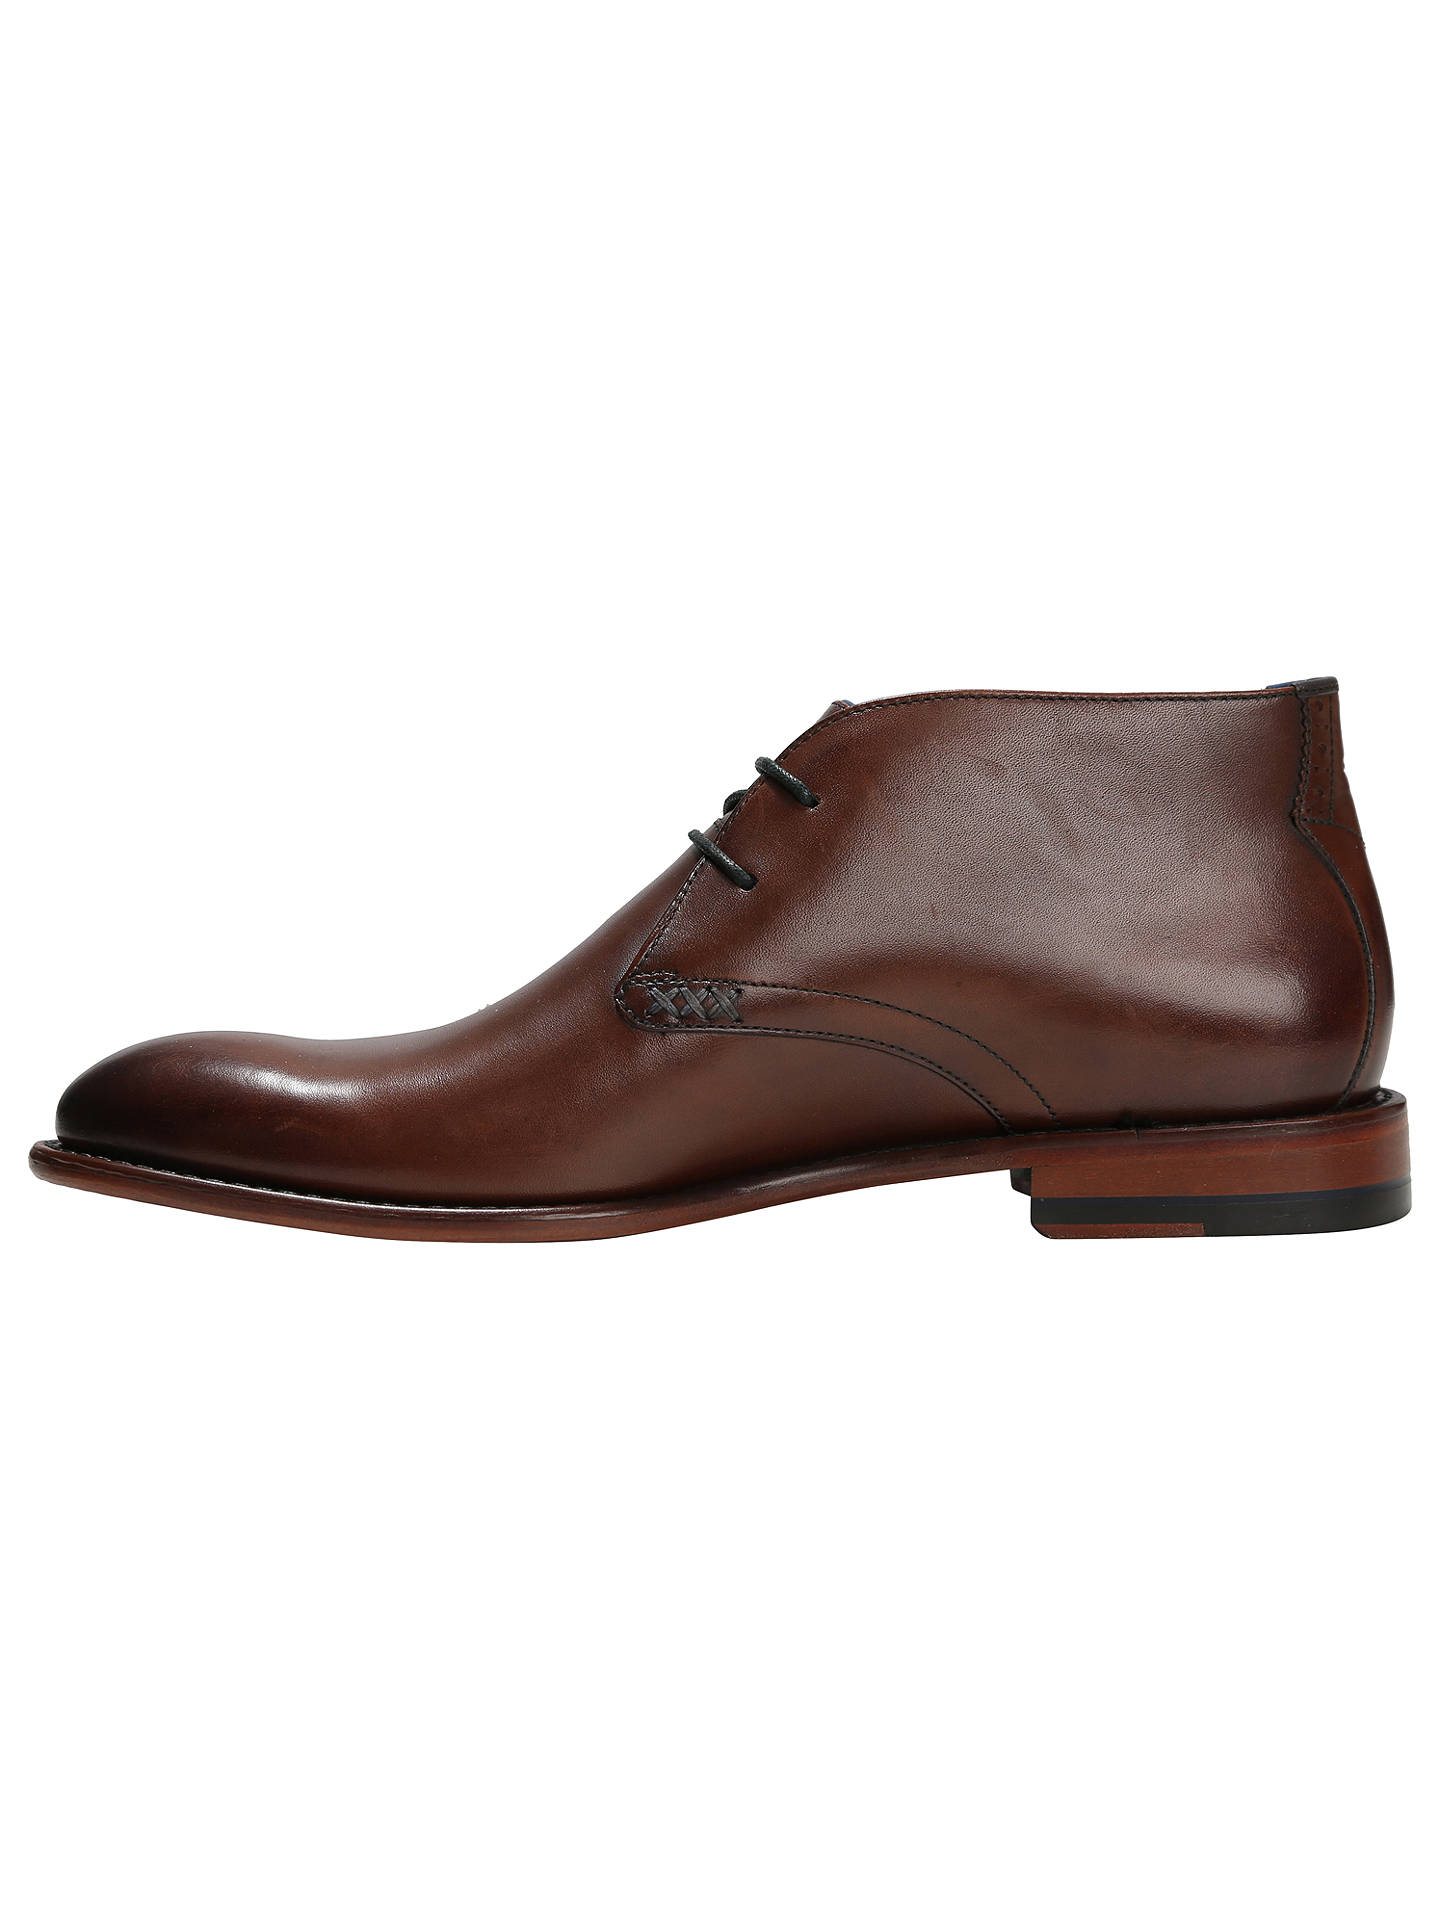 d9daa6ea358 Oliver Sweeney Waddell Derby Ankle Boots, Brown at John Lewis & Partners